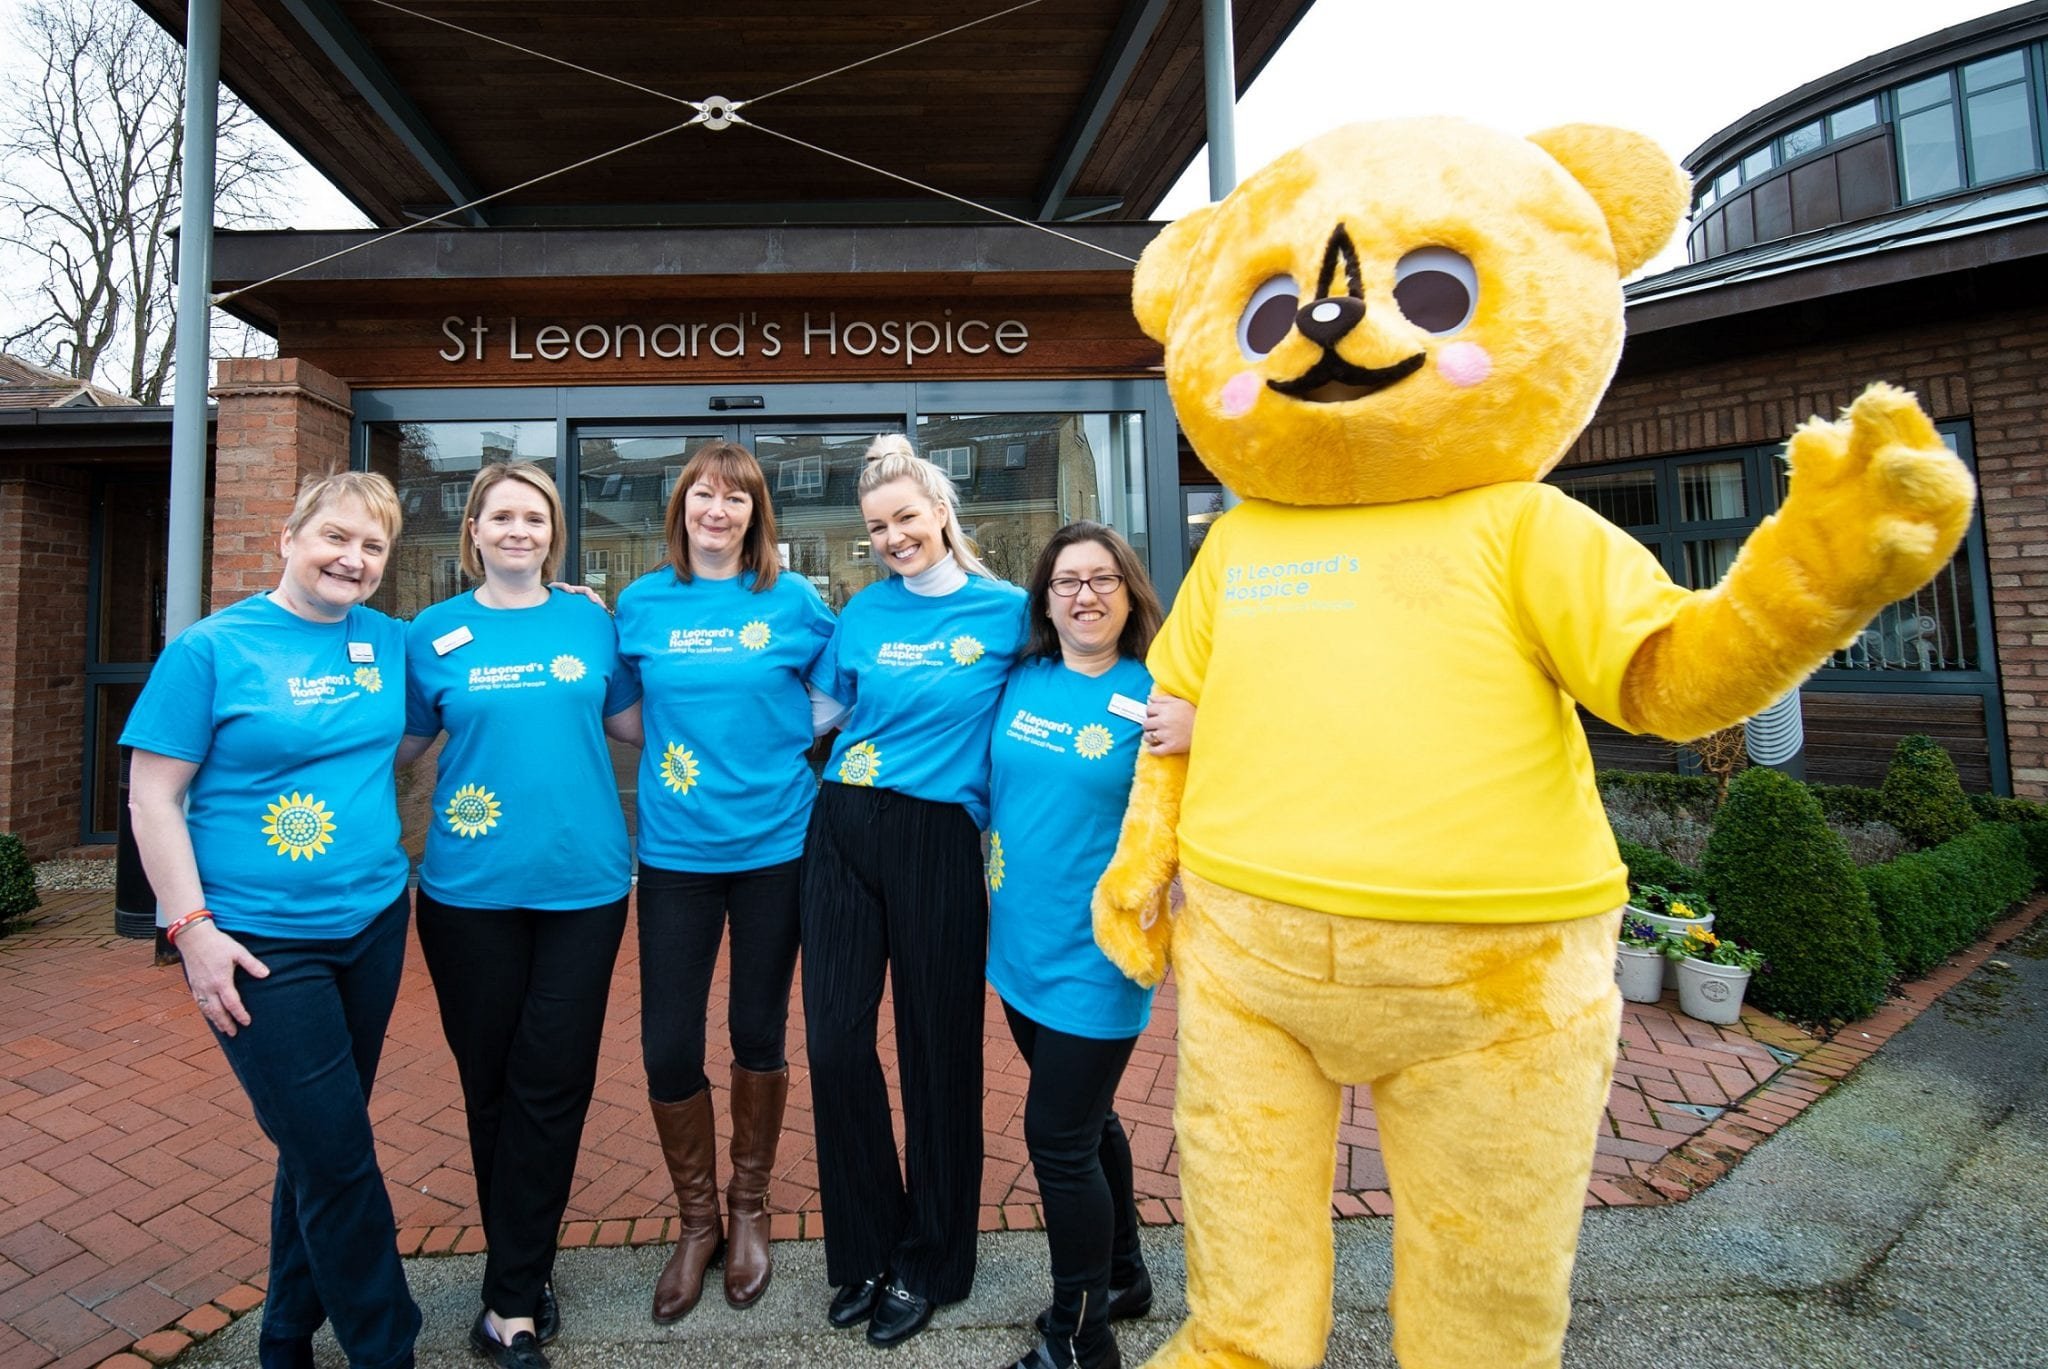 GOOD CAUSES SET TO BENEFIT AS YORK FESTIVAL NAMES ITS CHARITY PARTNERS